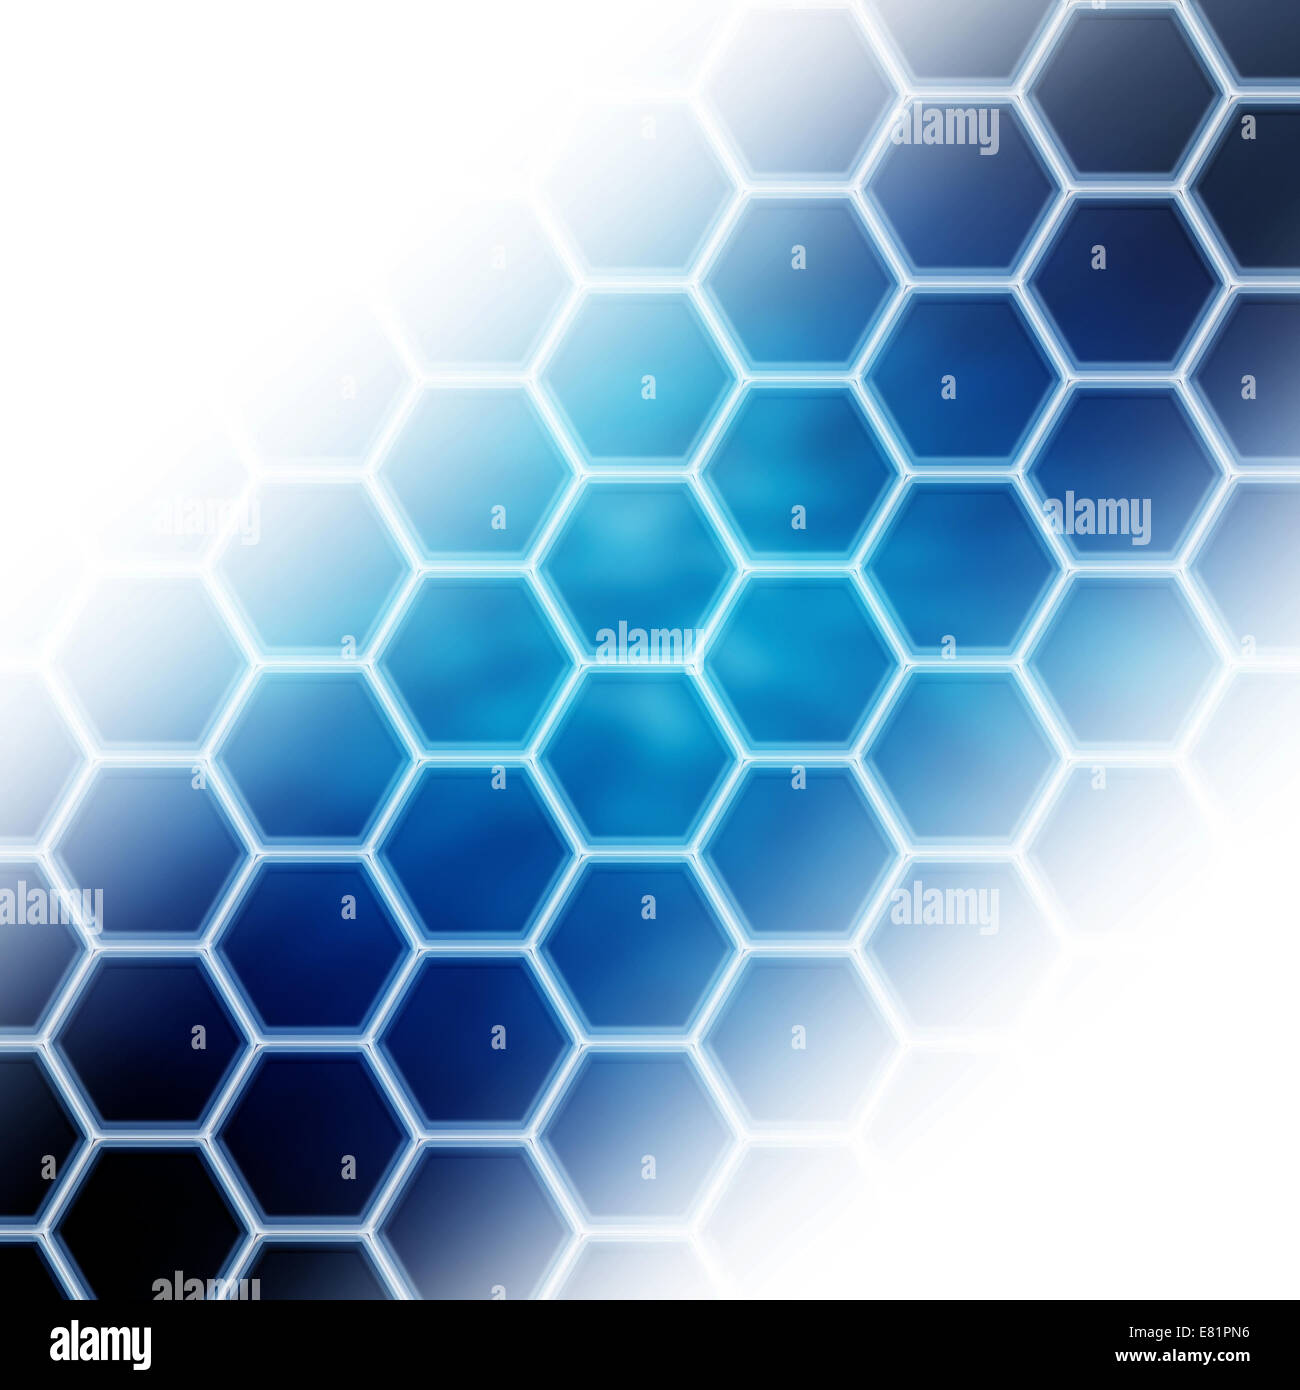 hexagonal cells pattern abstract background - Stock Image